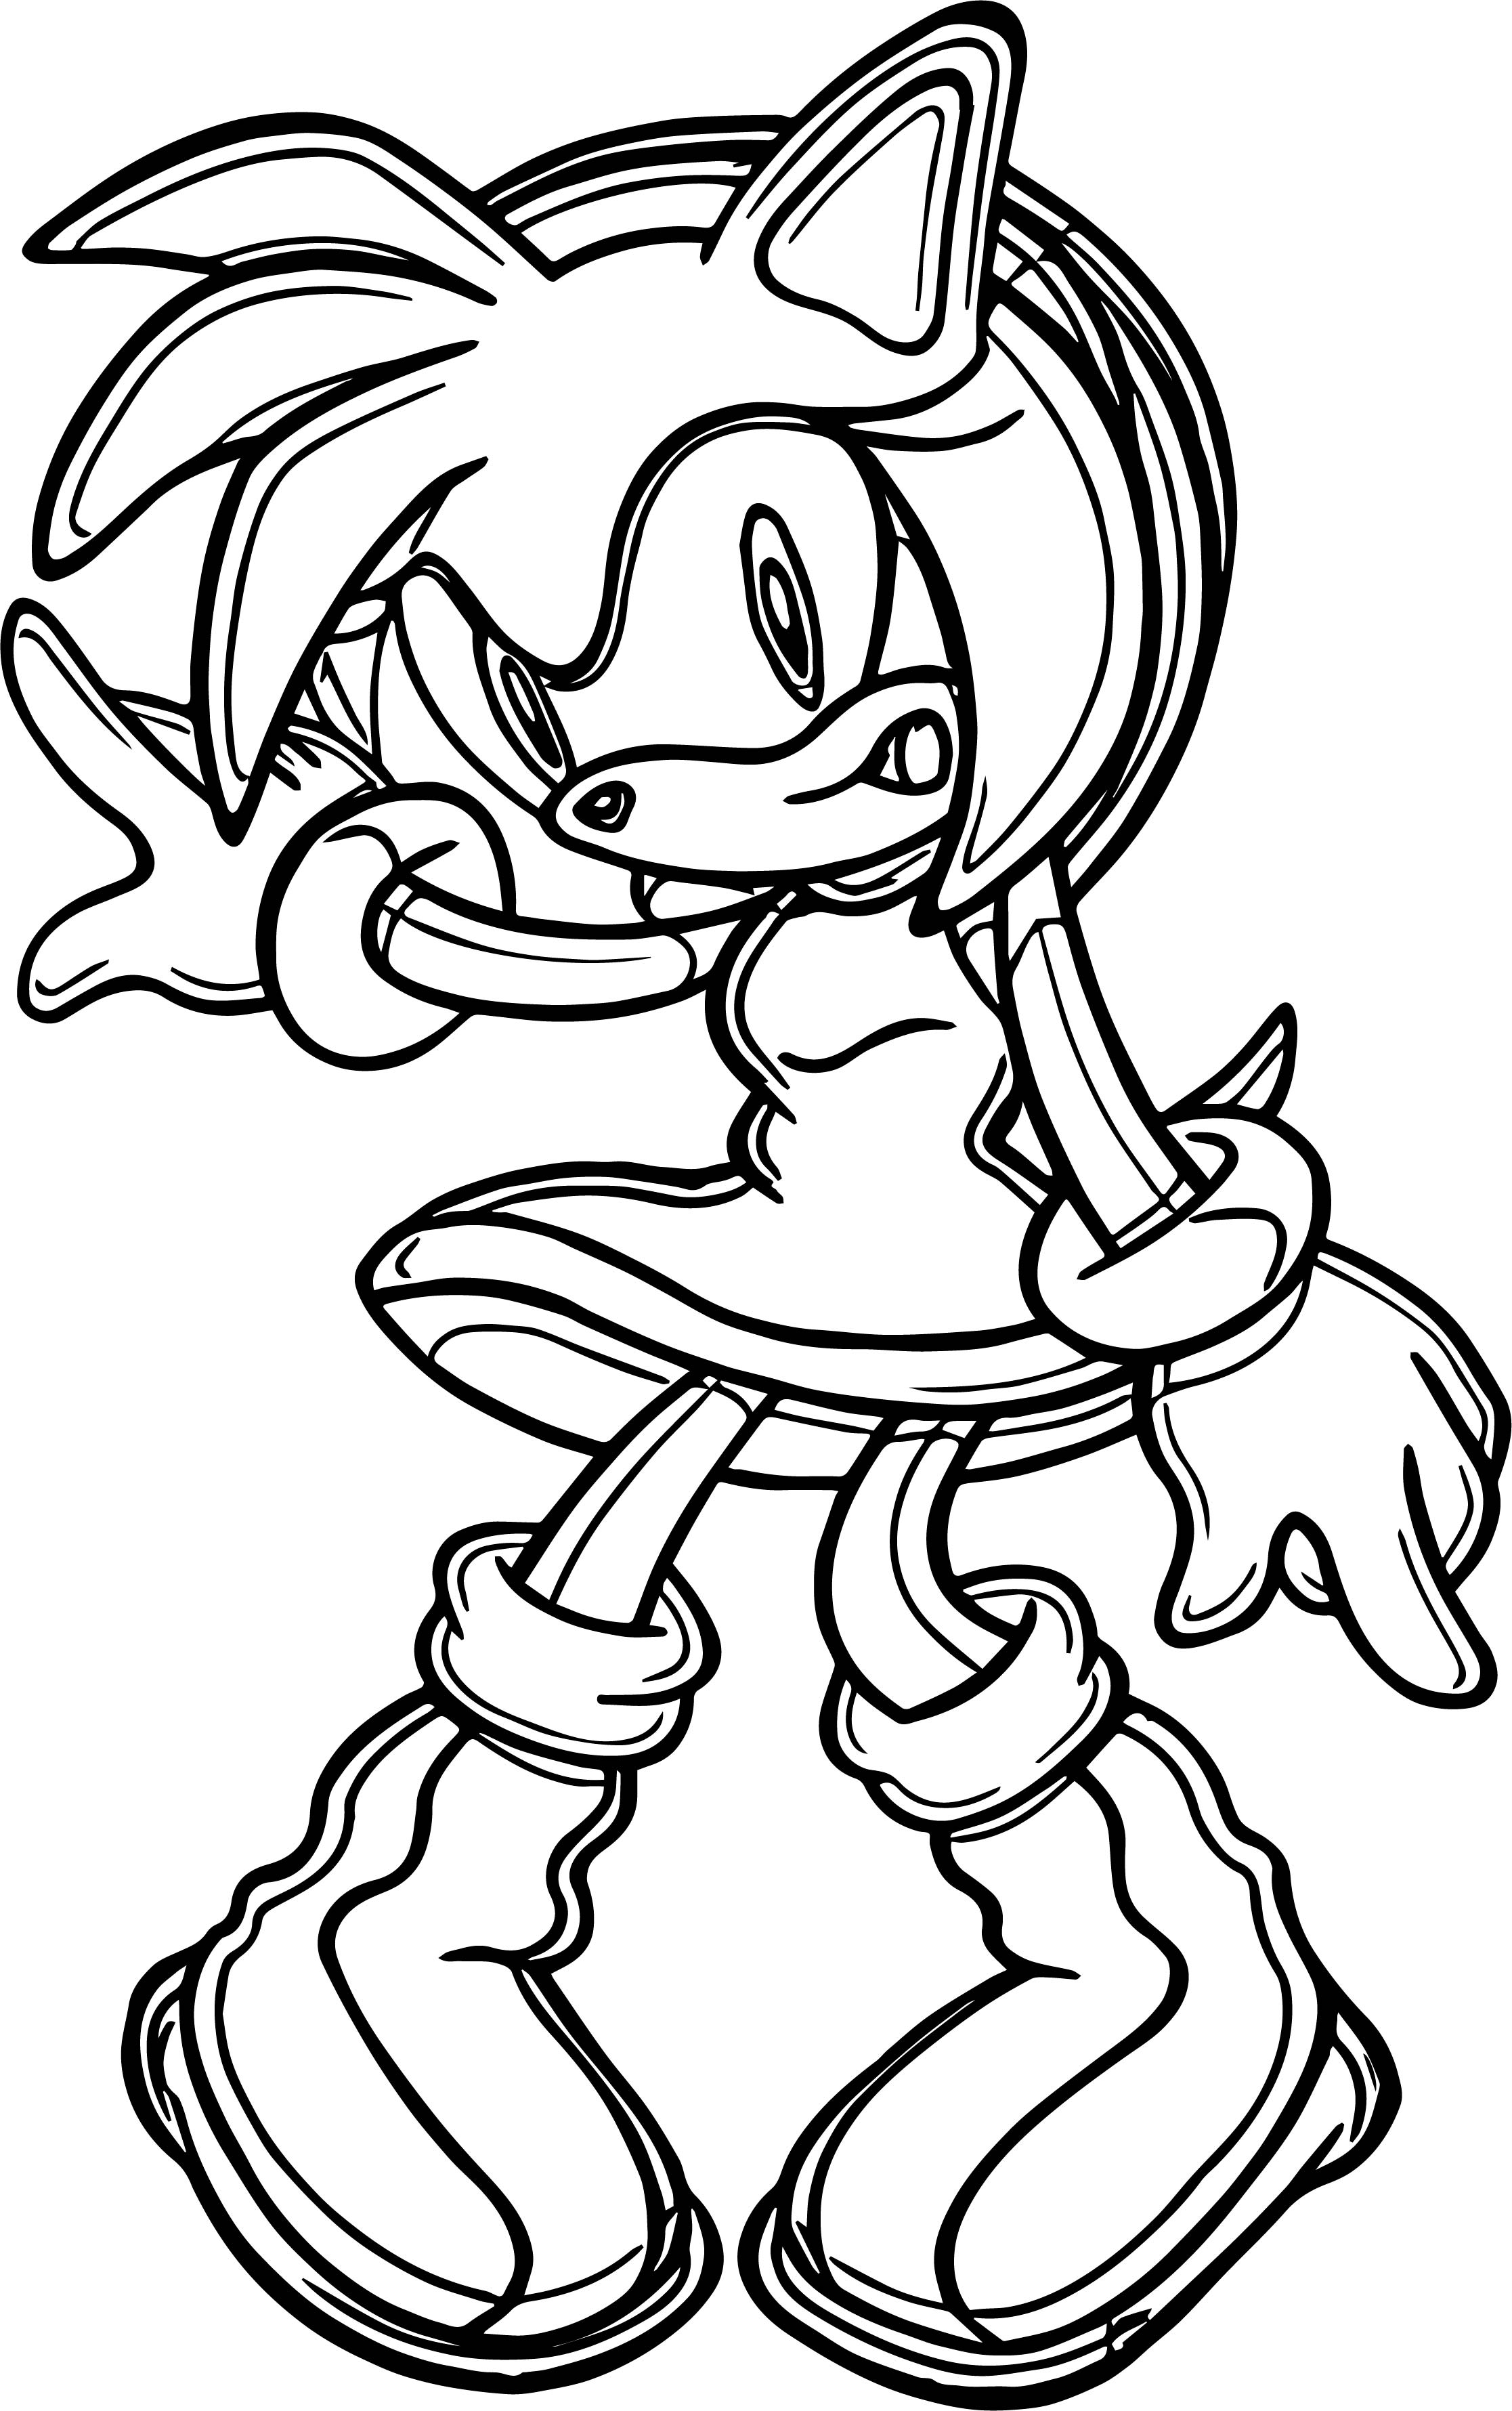 Amy Rose Best Coloring Page  Wecoloringpage